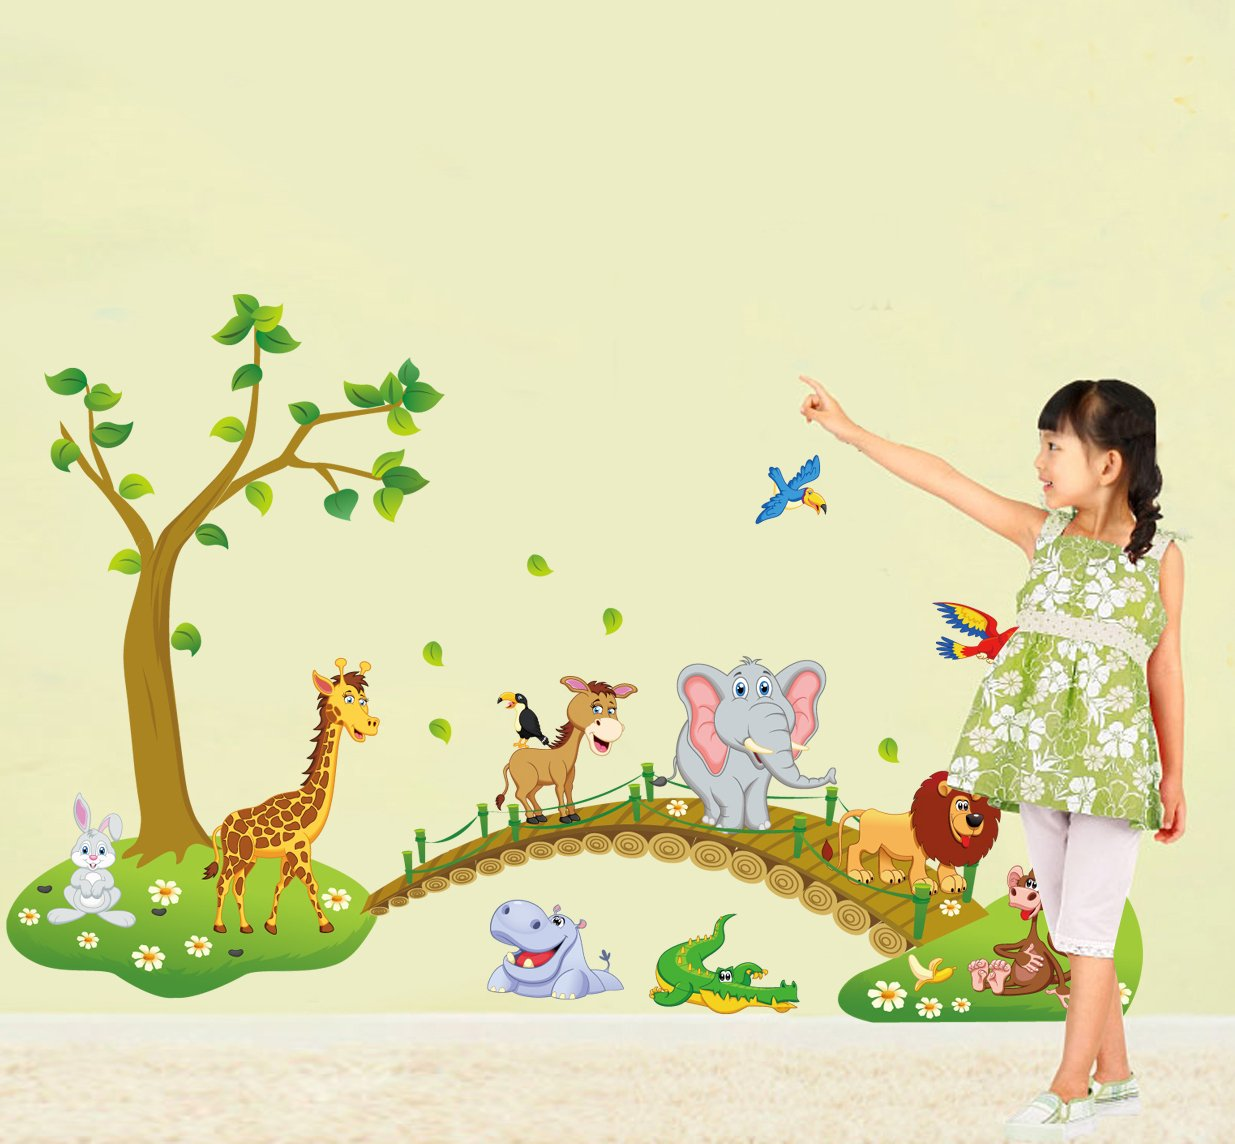 Lovely Animals Tree Bridge Wall Decal Home Sticker House Decoration WallPaper Removable Living Dinning Room Bedroom Kitchen Art Picture Murals DIY Stick Girls Boys kids Nursery Baby Playroom Decoration fashionbeautybuy1